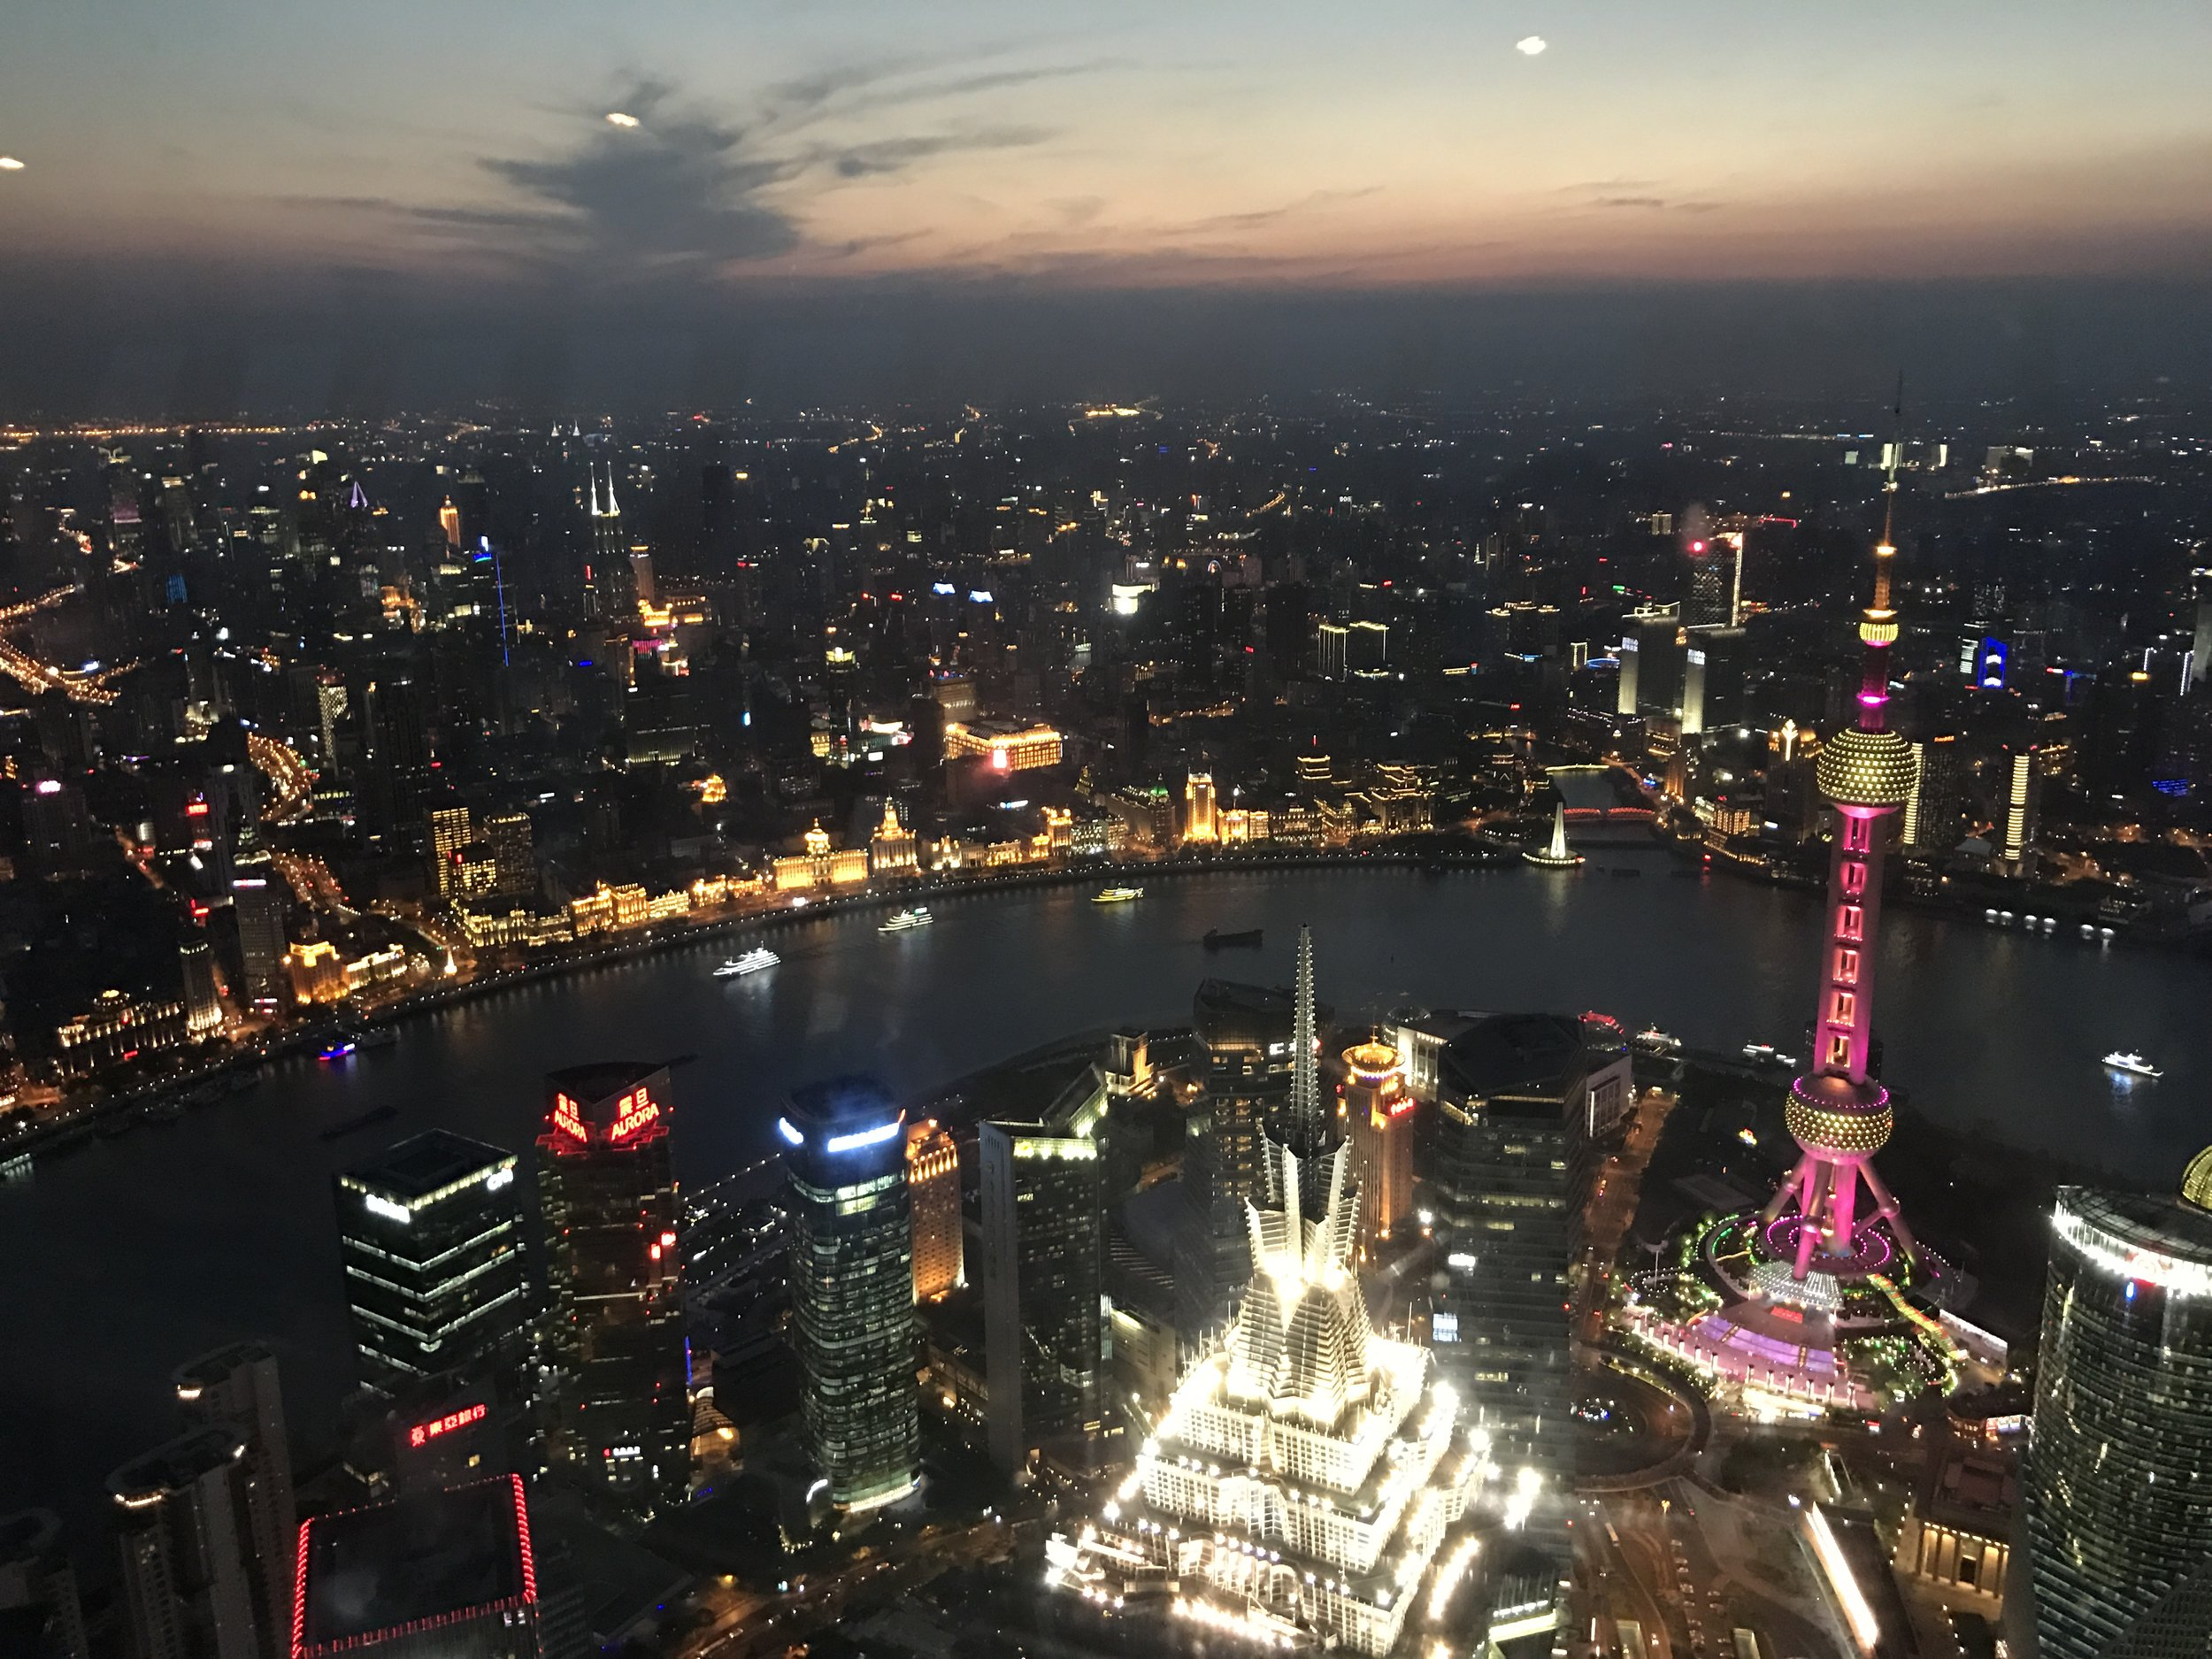 At the top of Shanghai World Financial Center